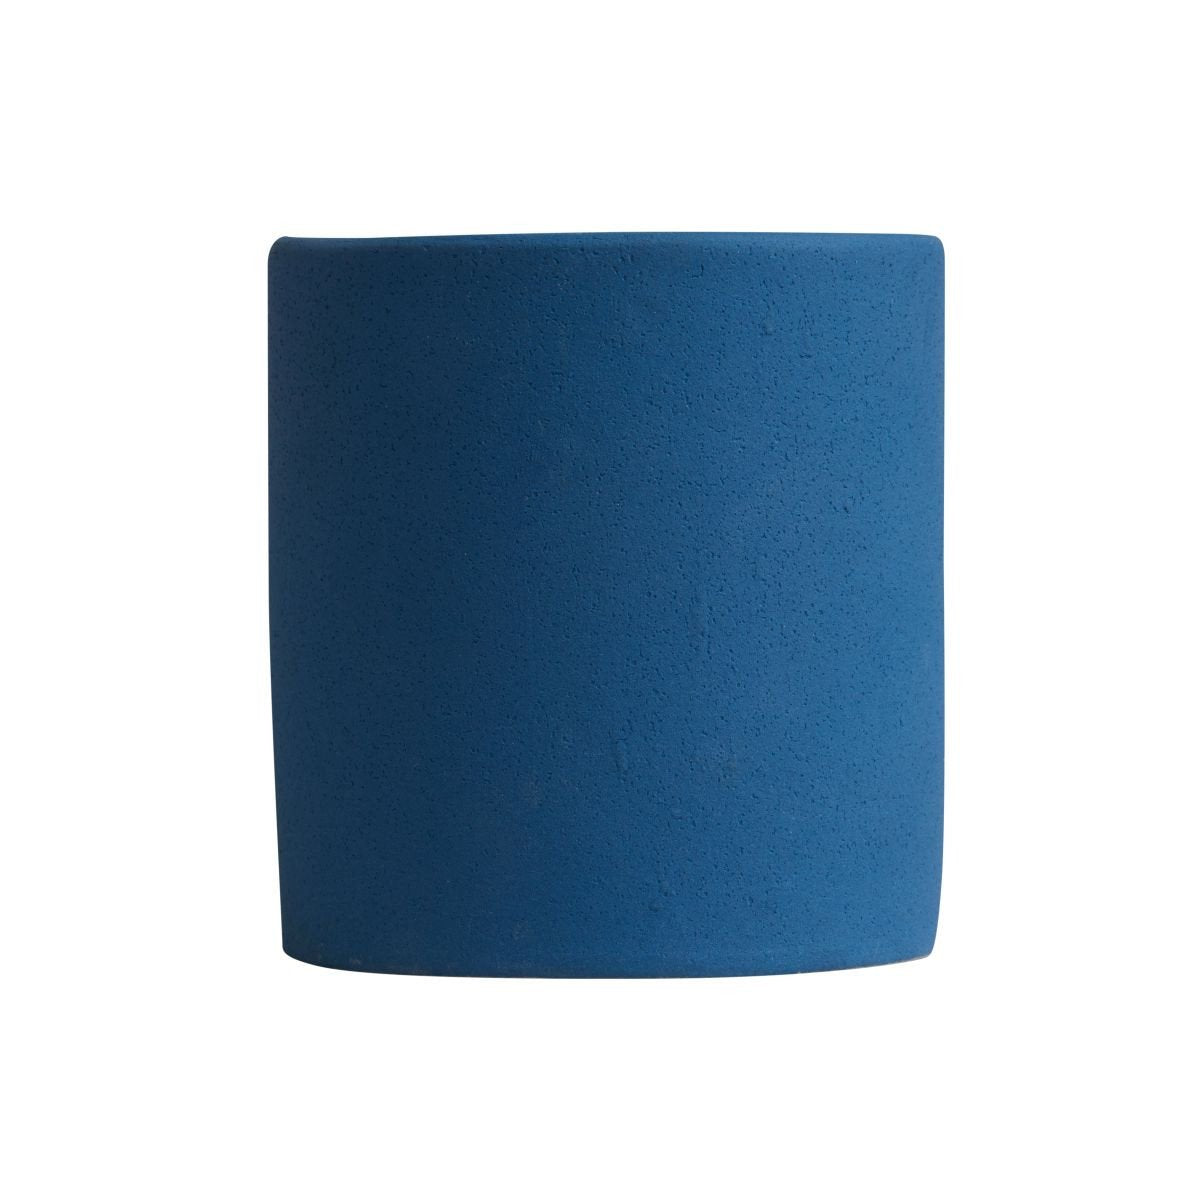 Small Why-Not Cylinder in Dazzling Blue design by OYOY